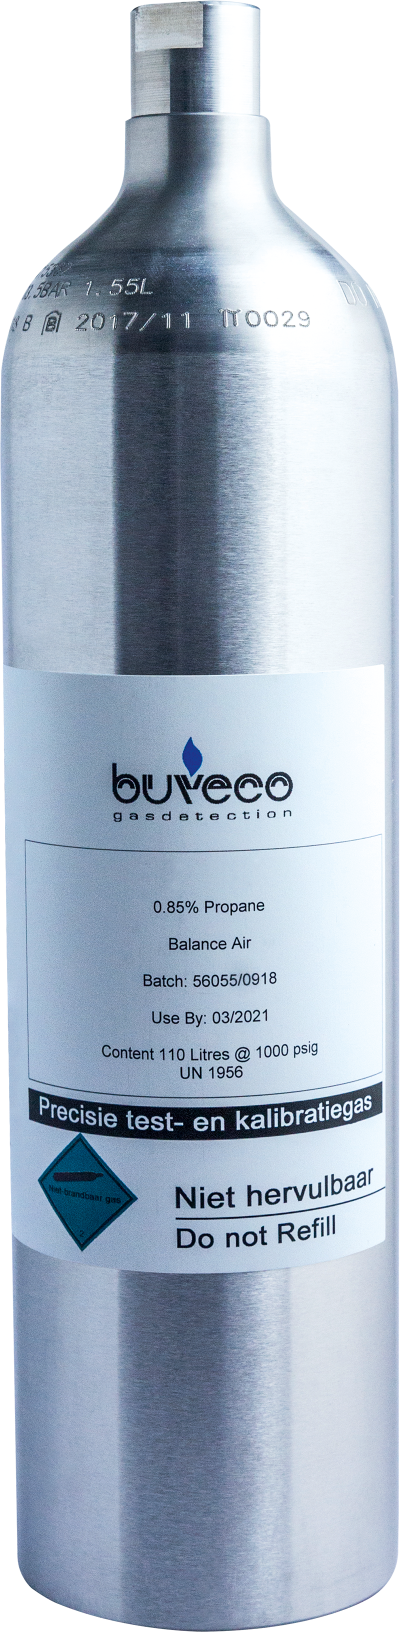 Buveco test gas cilinder